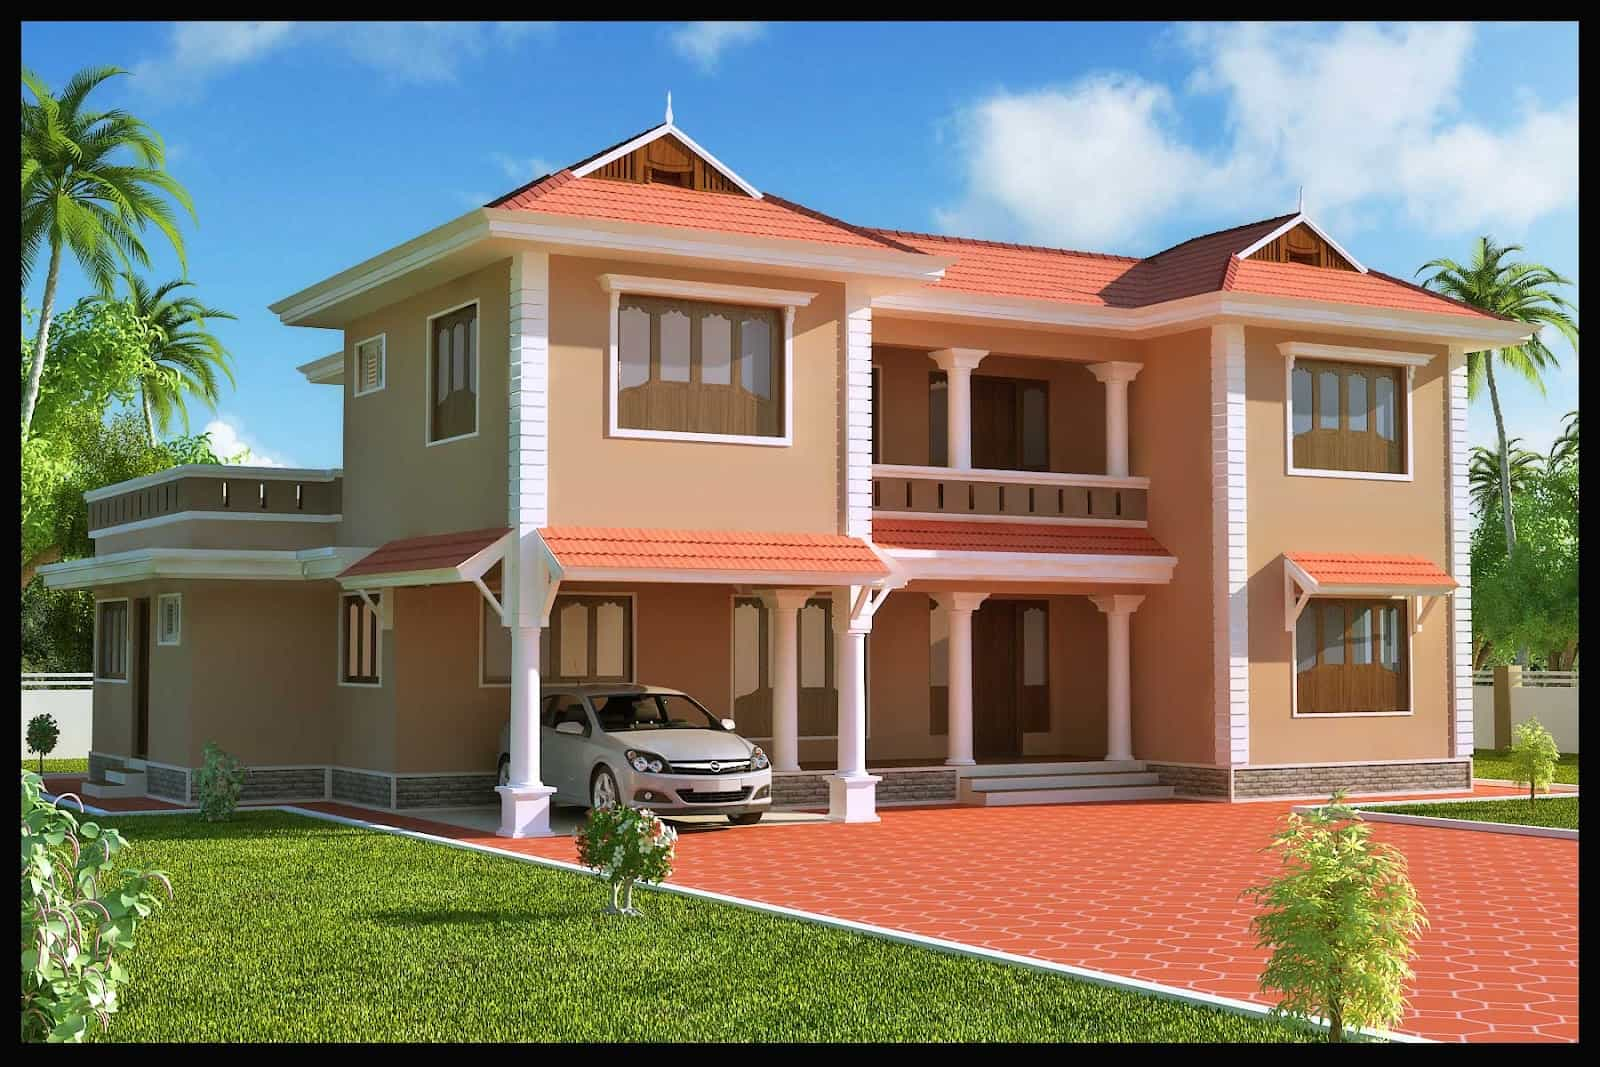 Stylish Indian Duplex house exterior design Kerala Home Design Duplex ...